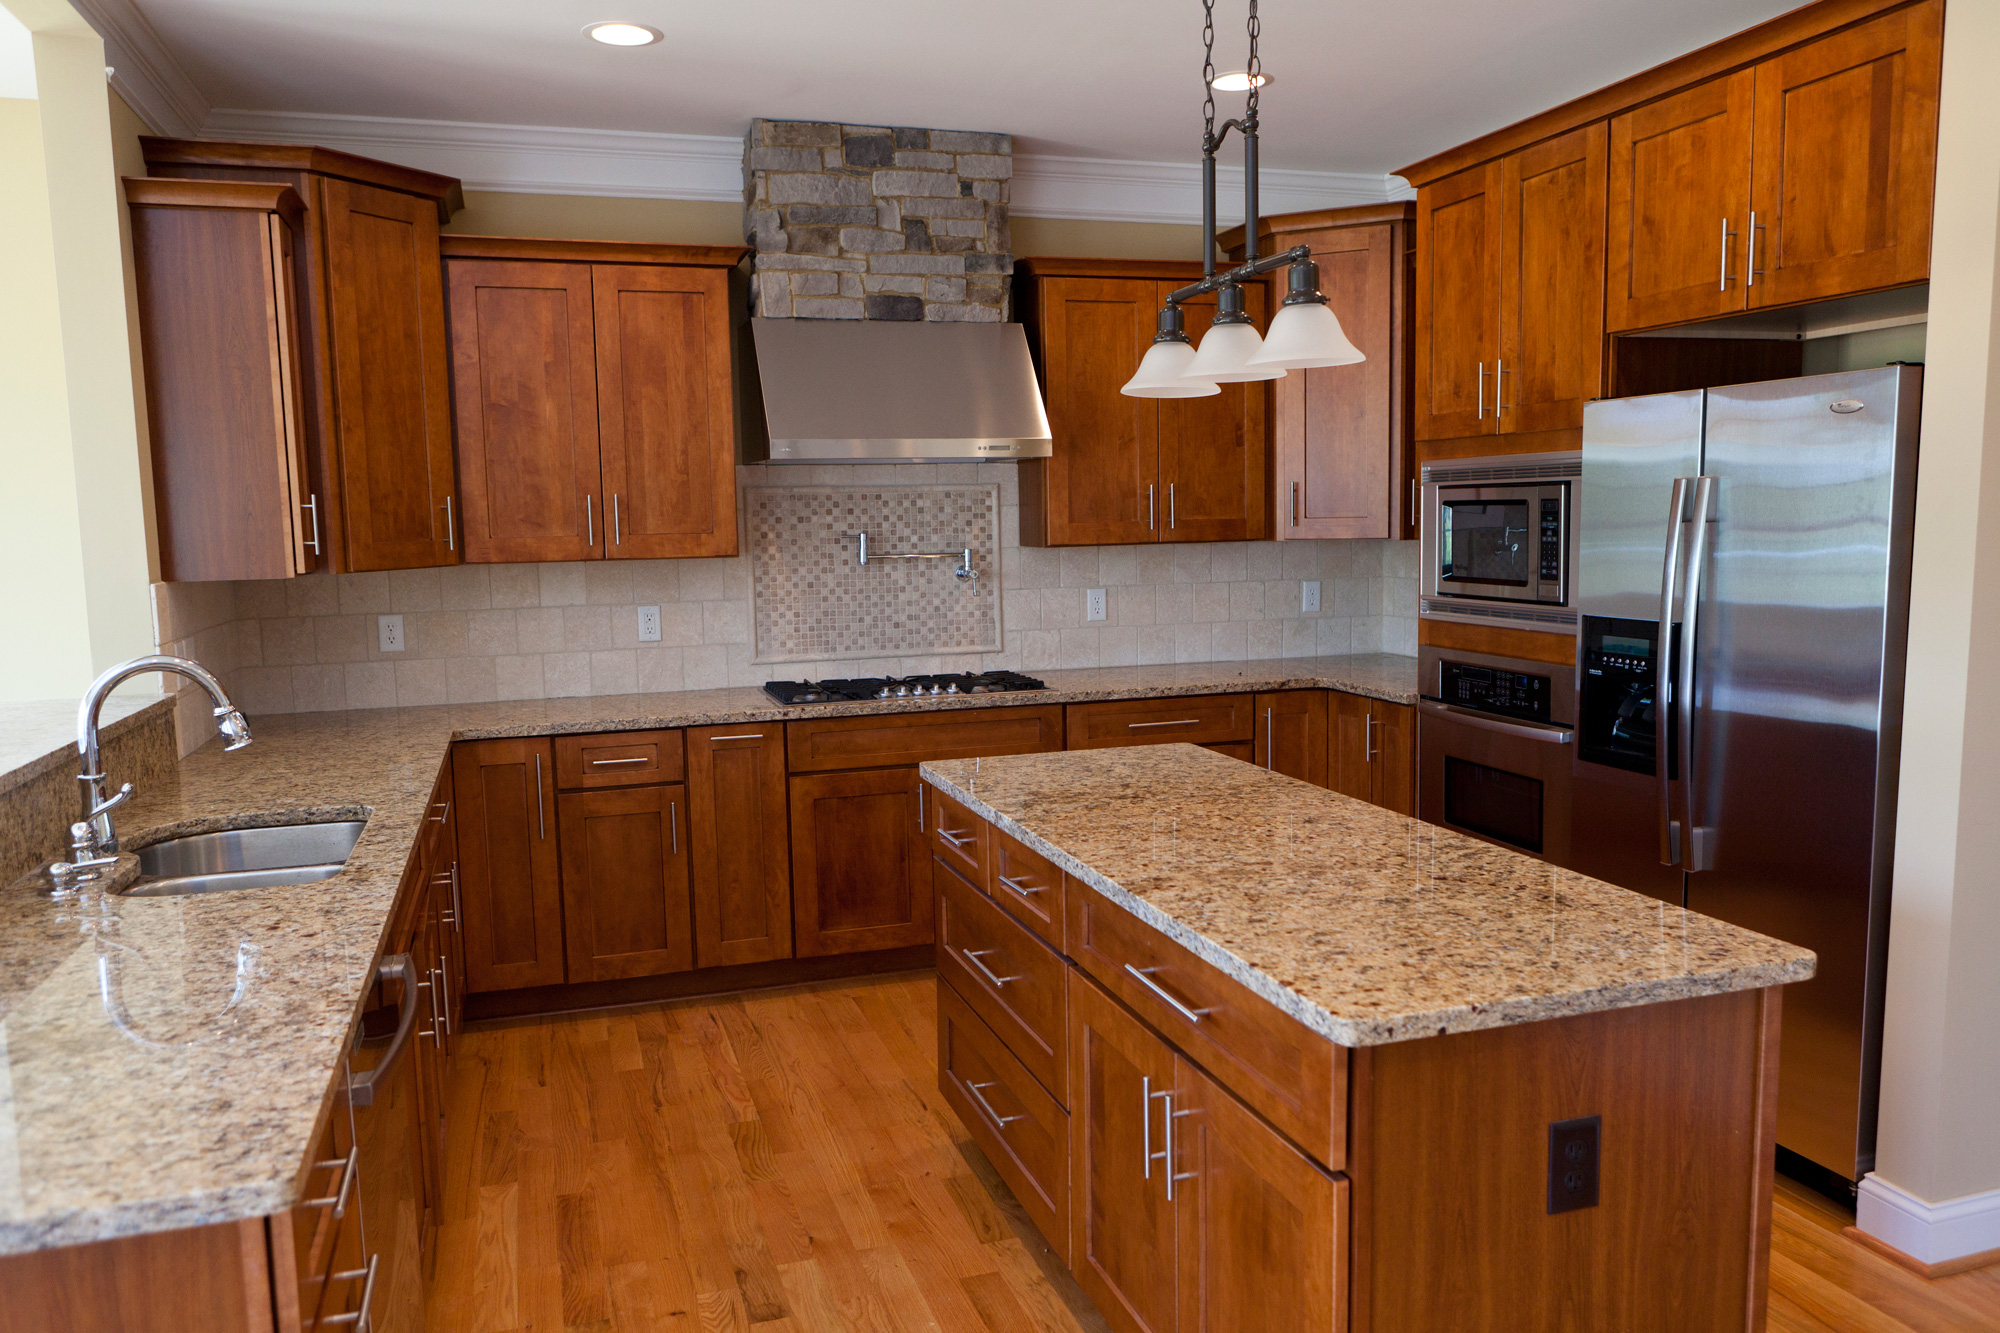 remodel company kitchen remodels bathroom remodels home